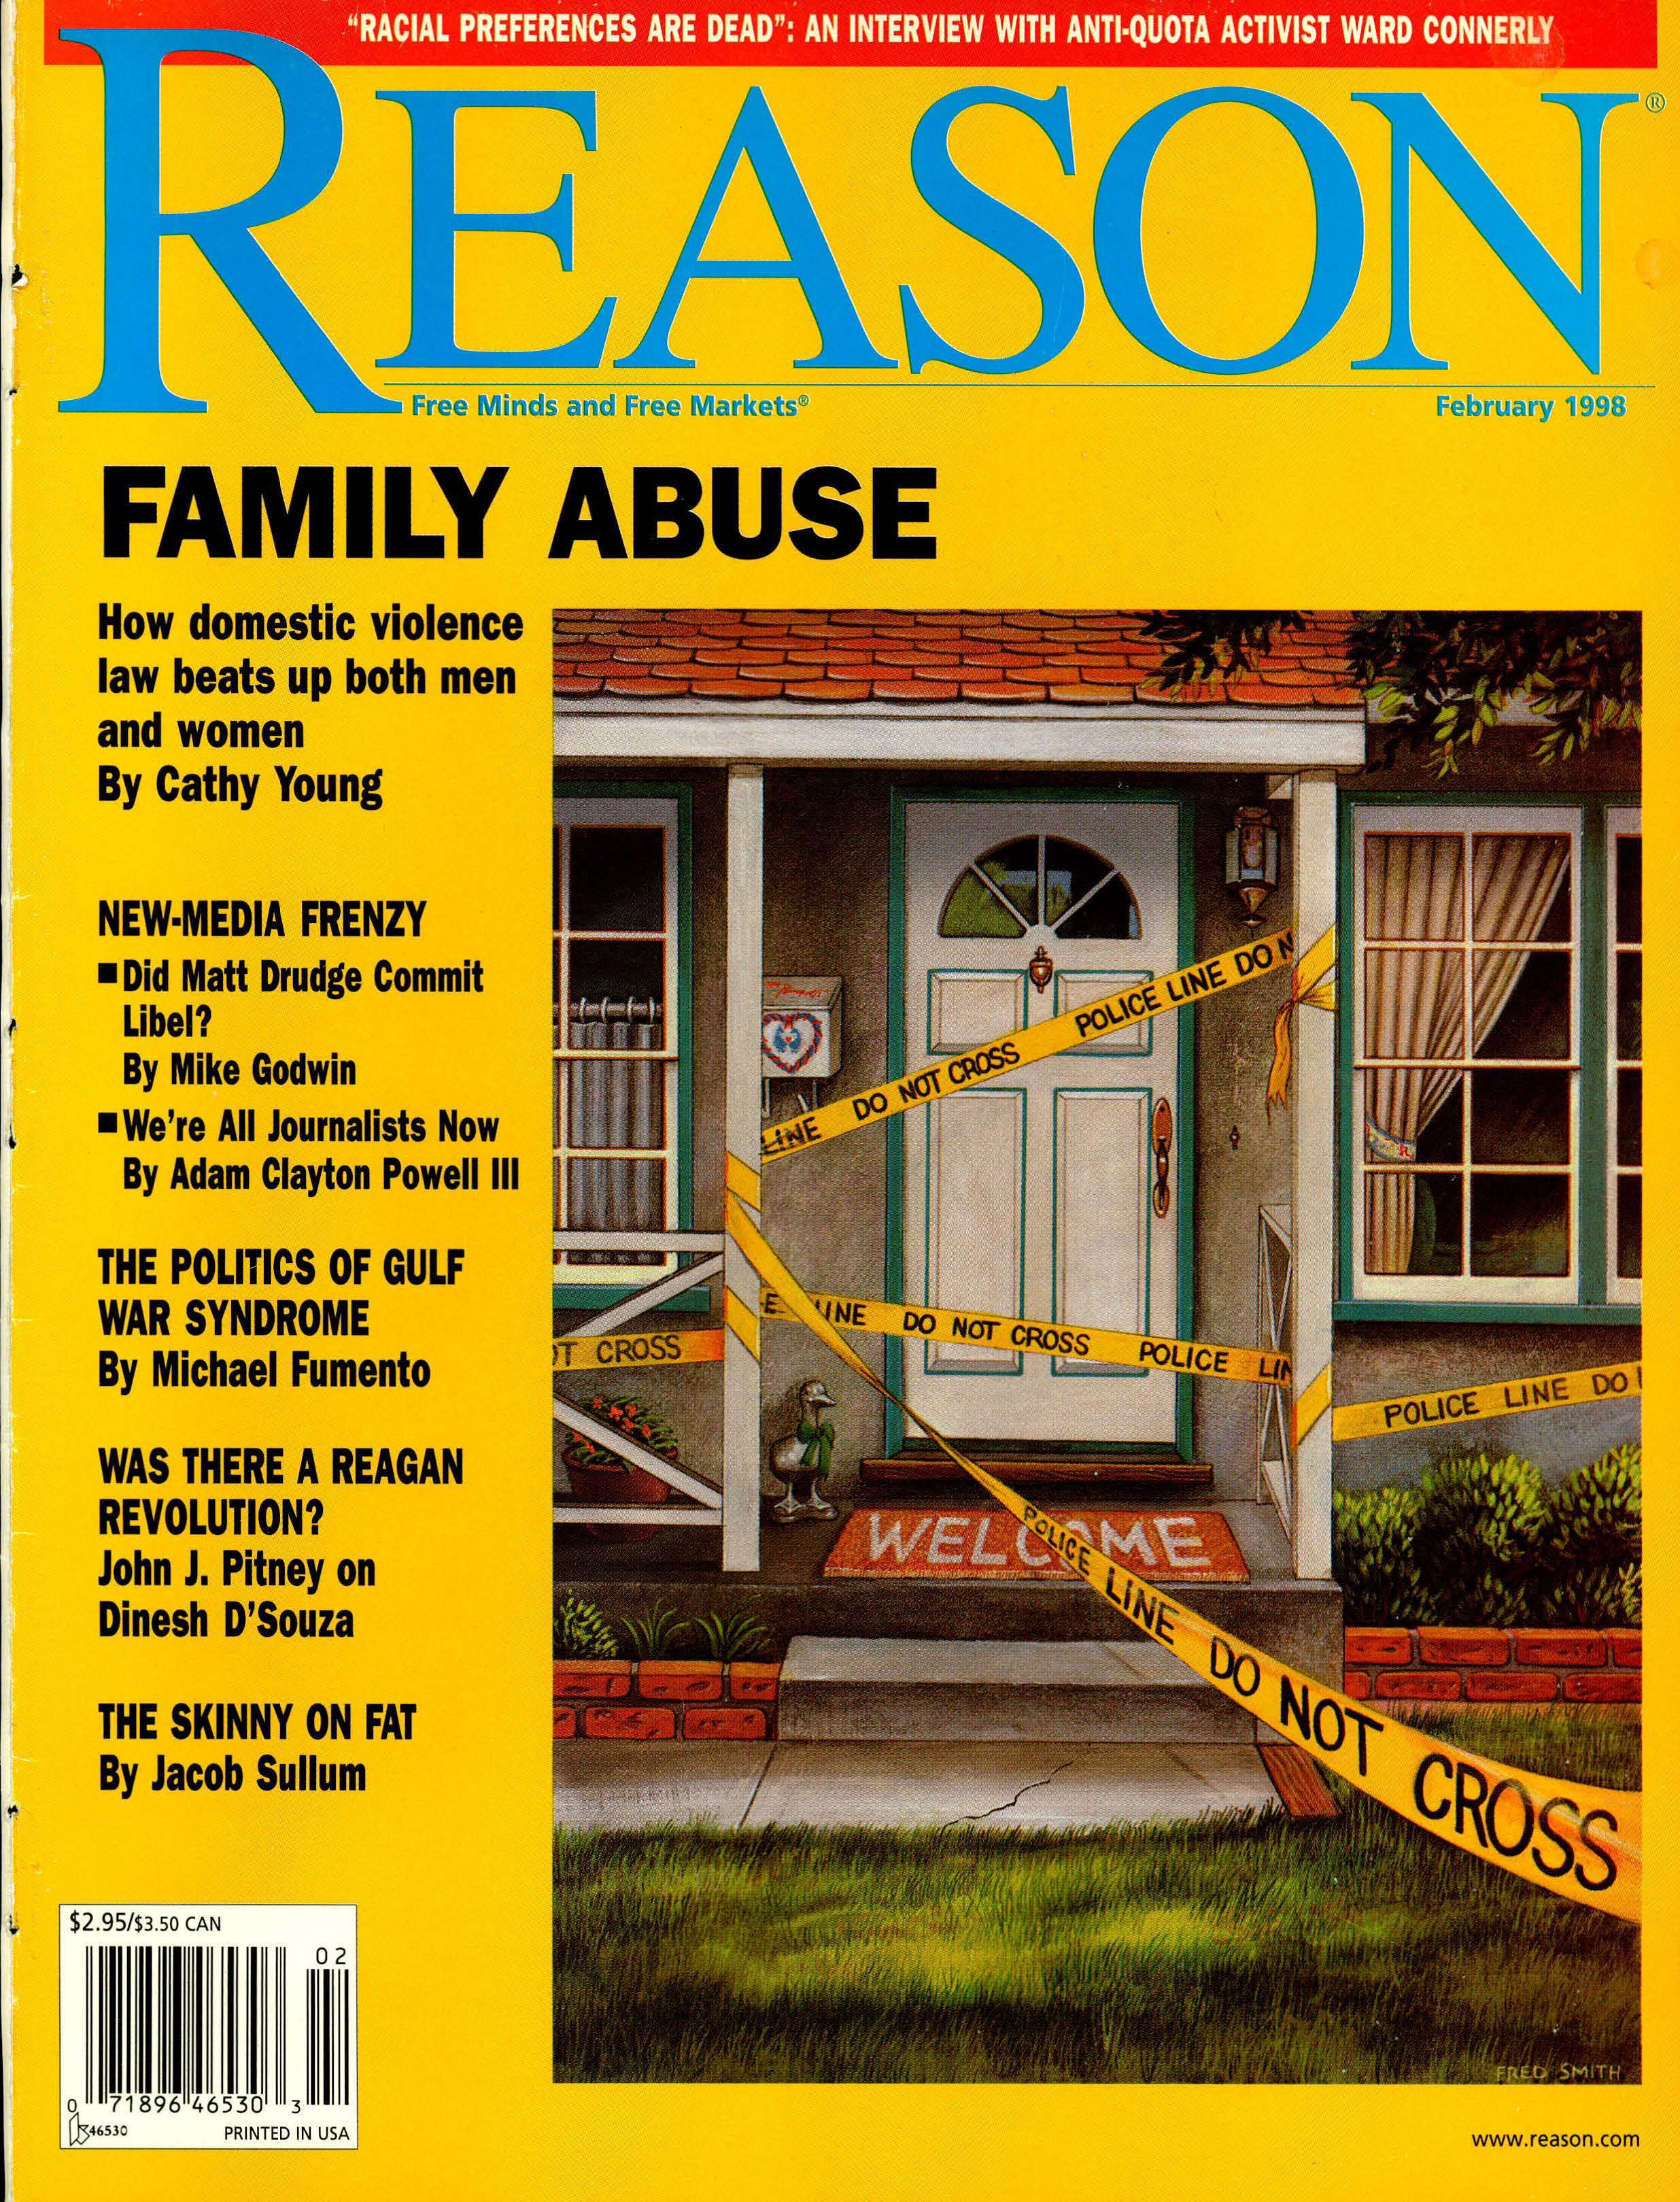 Reason Magazine, February 1998 cover image